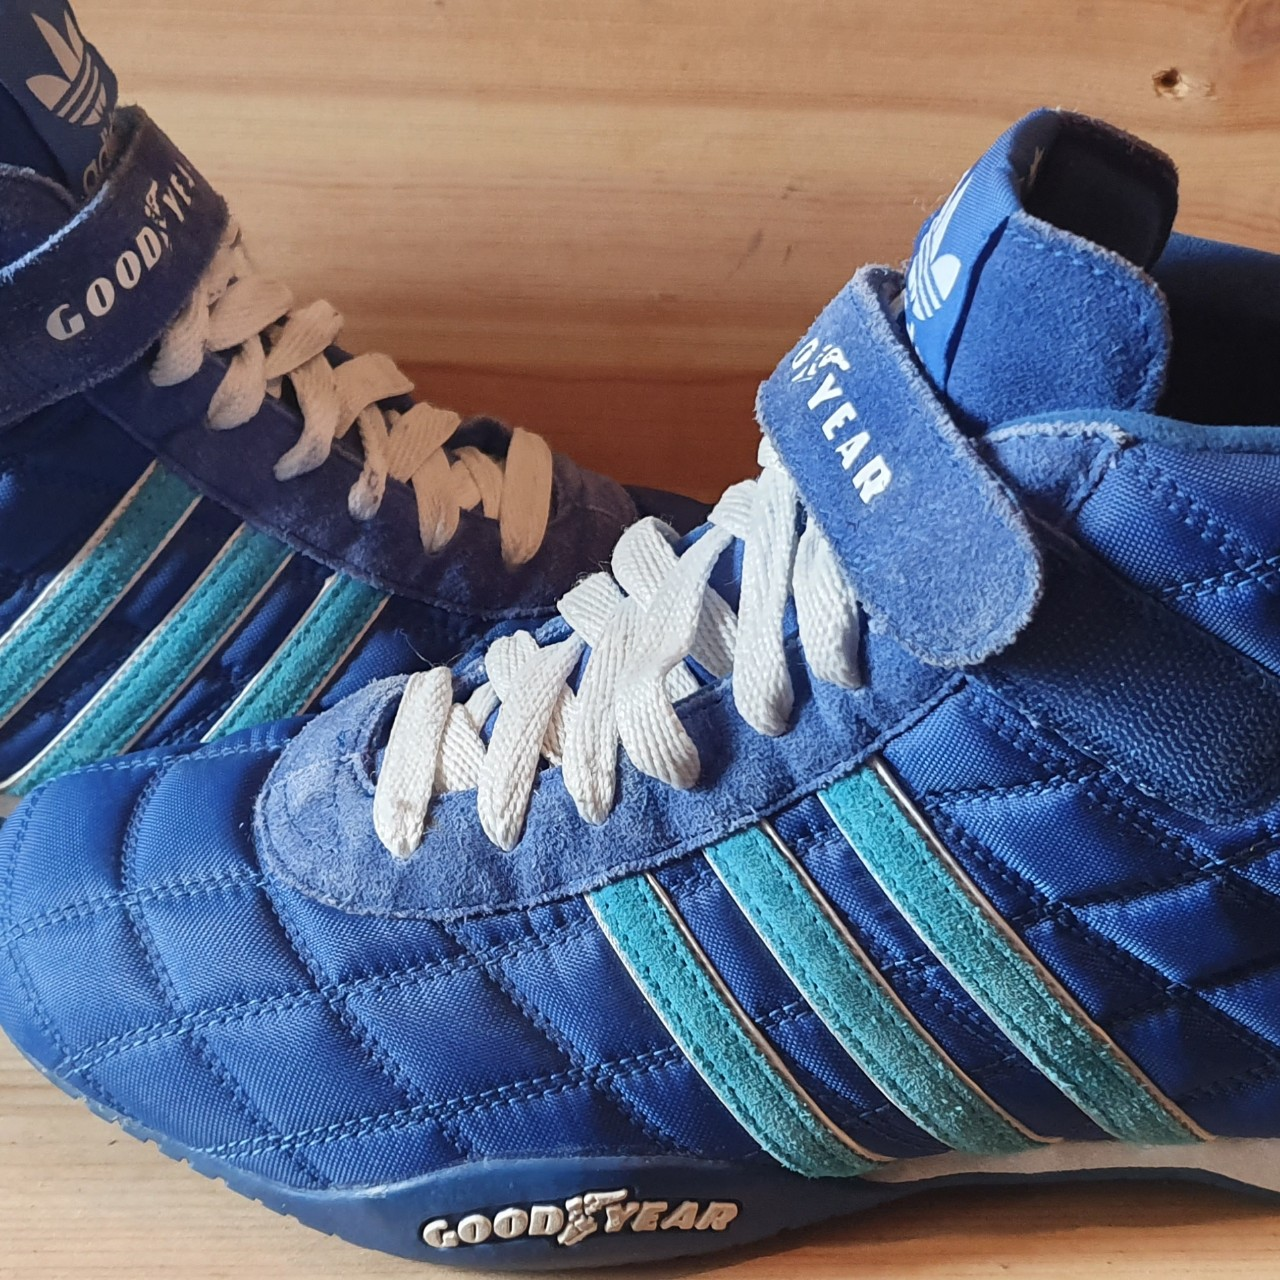 meilleure sélection 38795 b854f ADIDAS GOODYEAR MONACO TRAINERS SIZE 9.5UK very ...